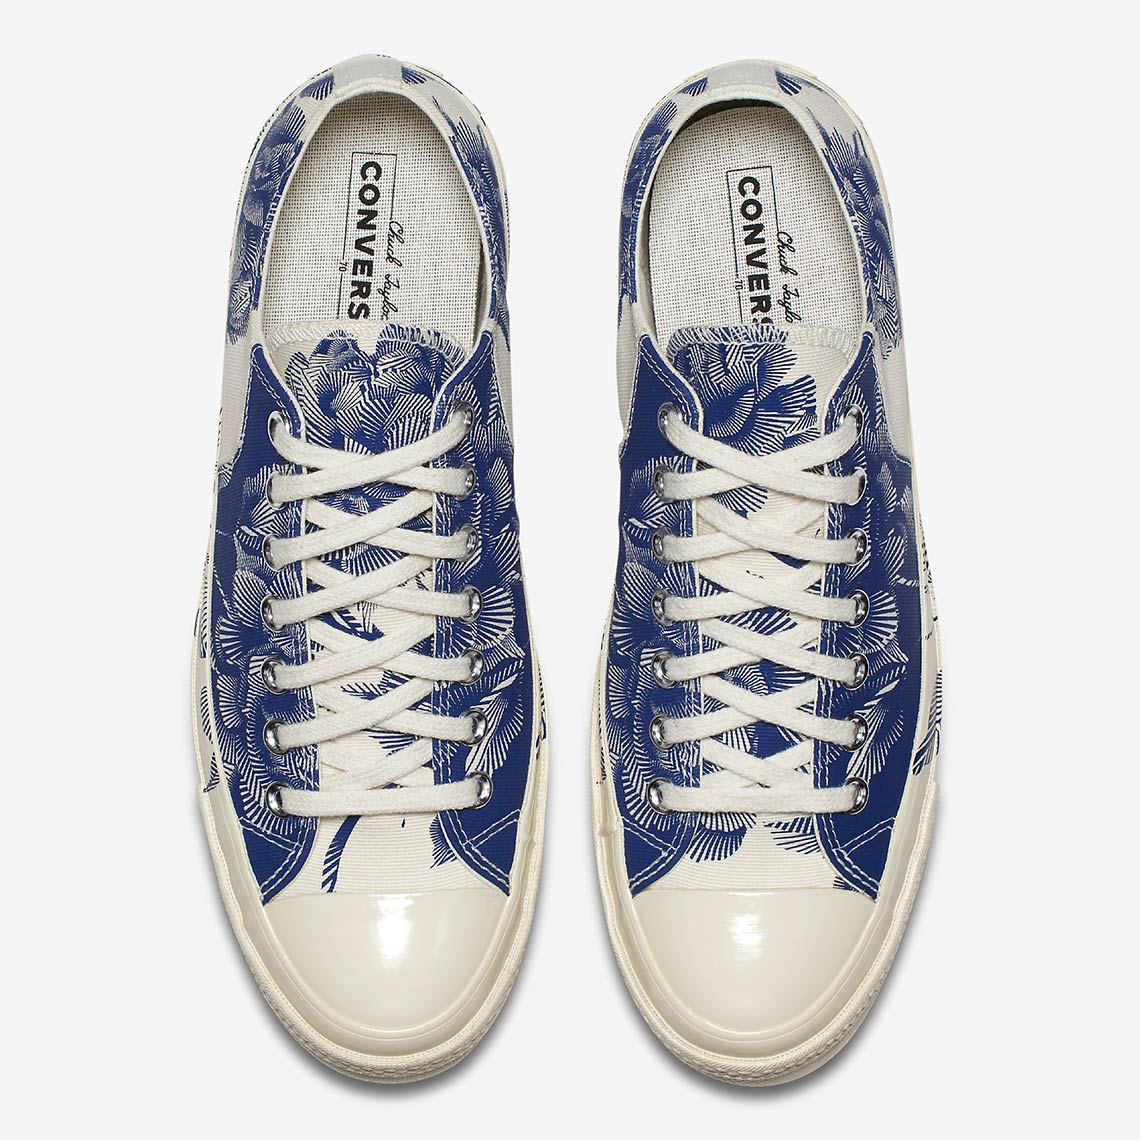 864c318f66a Converse Chuck 70 Porcelain Peony AVAILABLE AT Nike  85. Color  Black